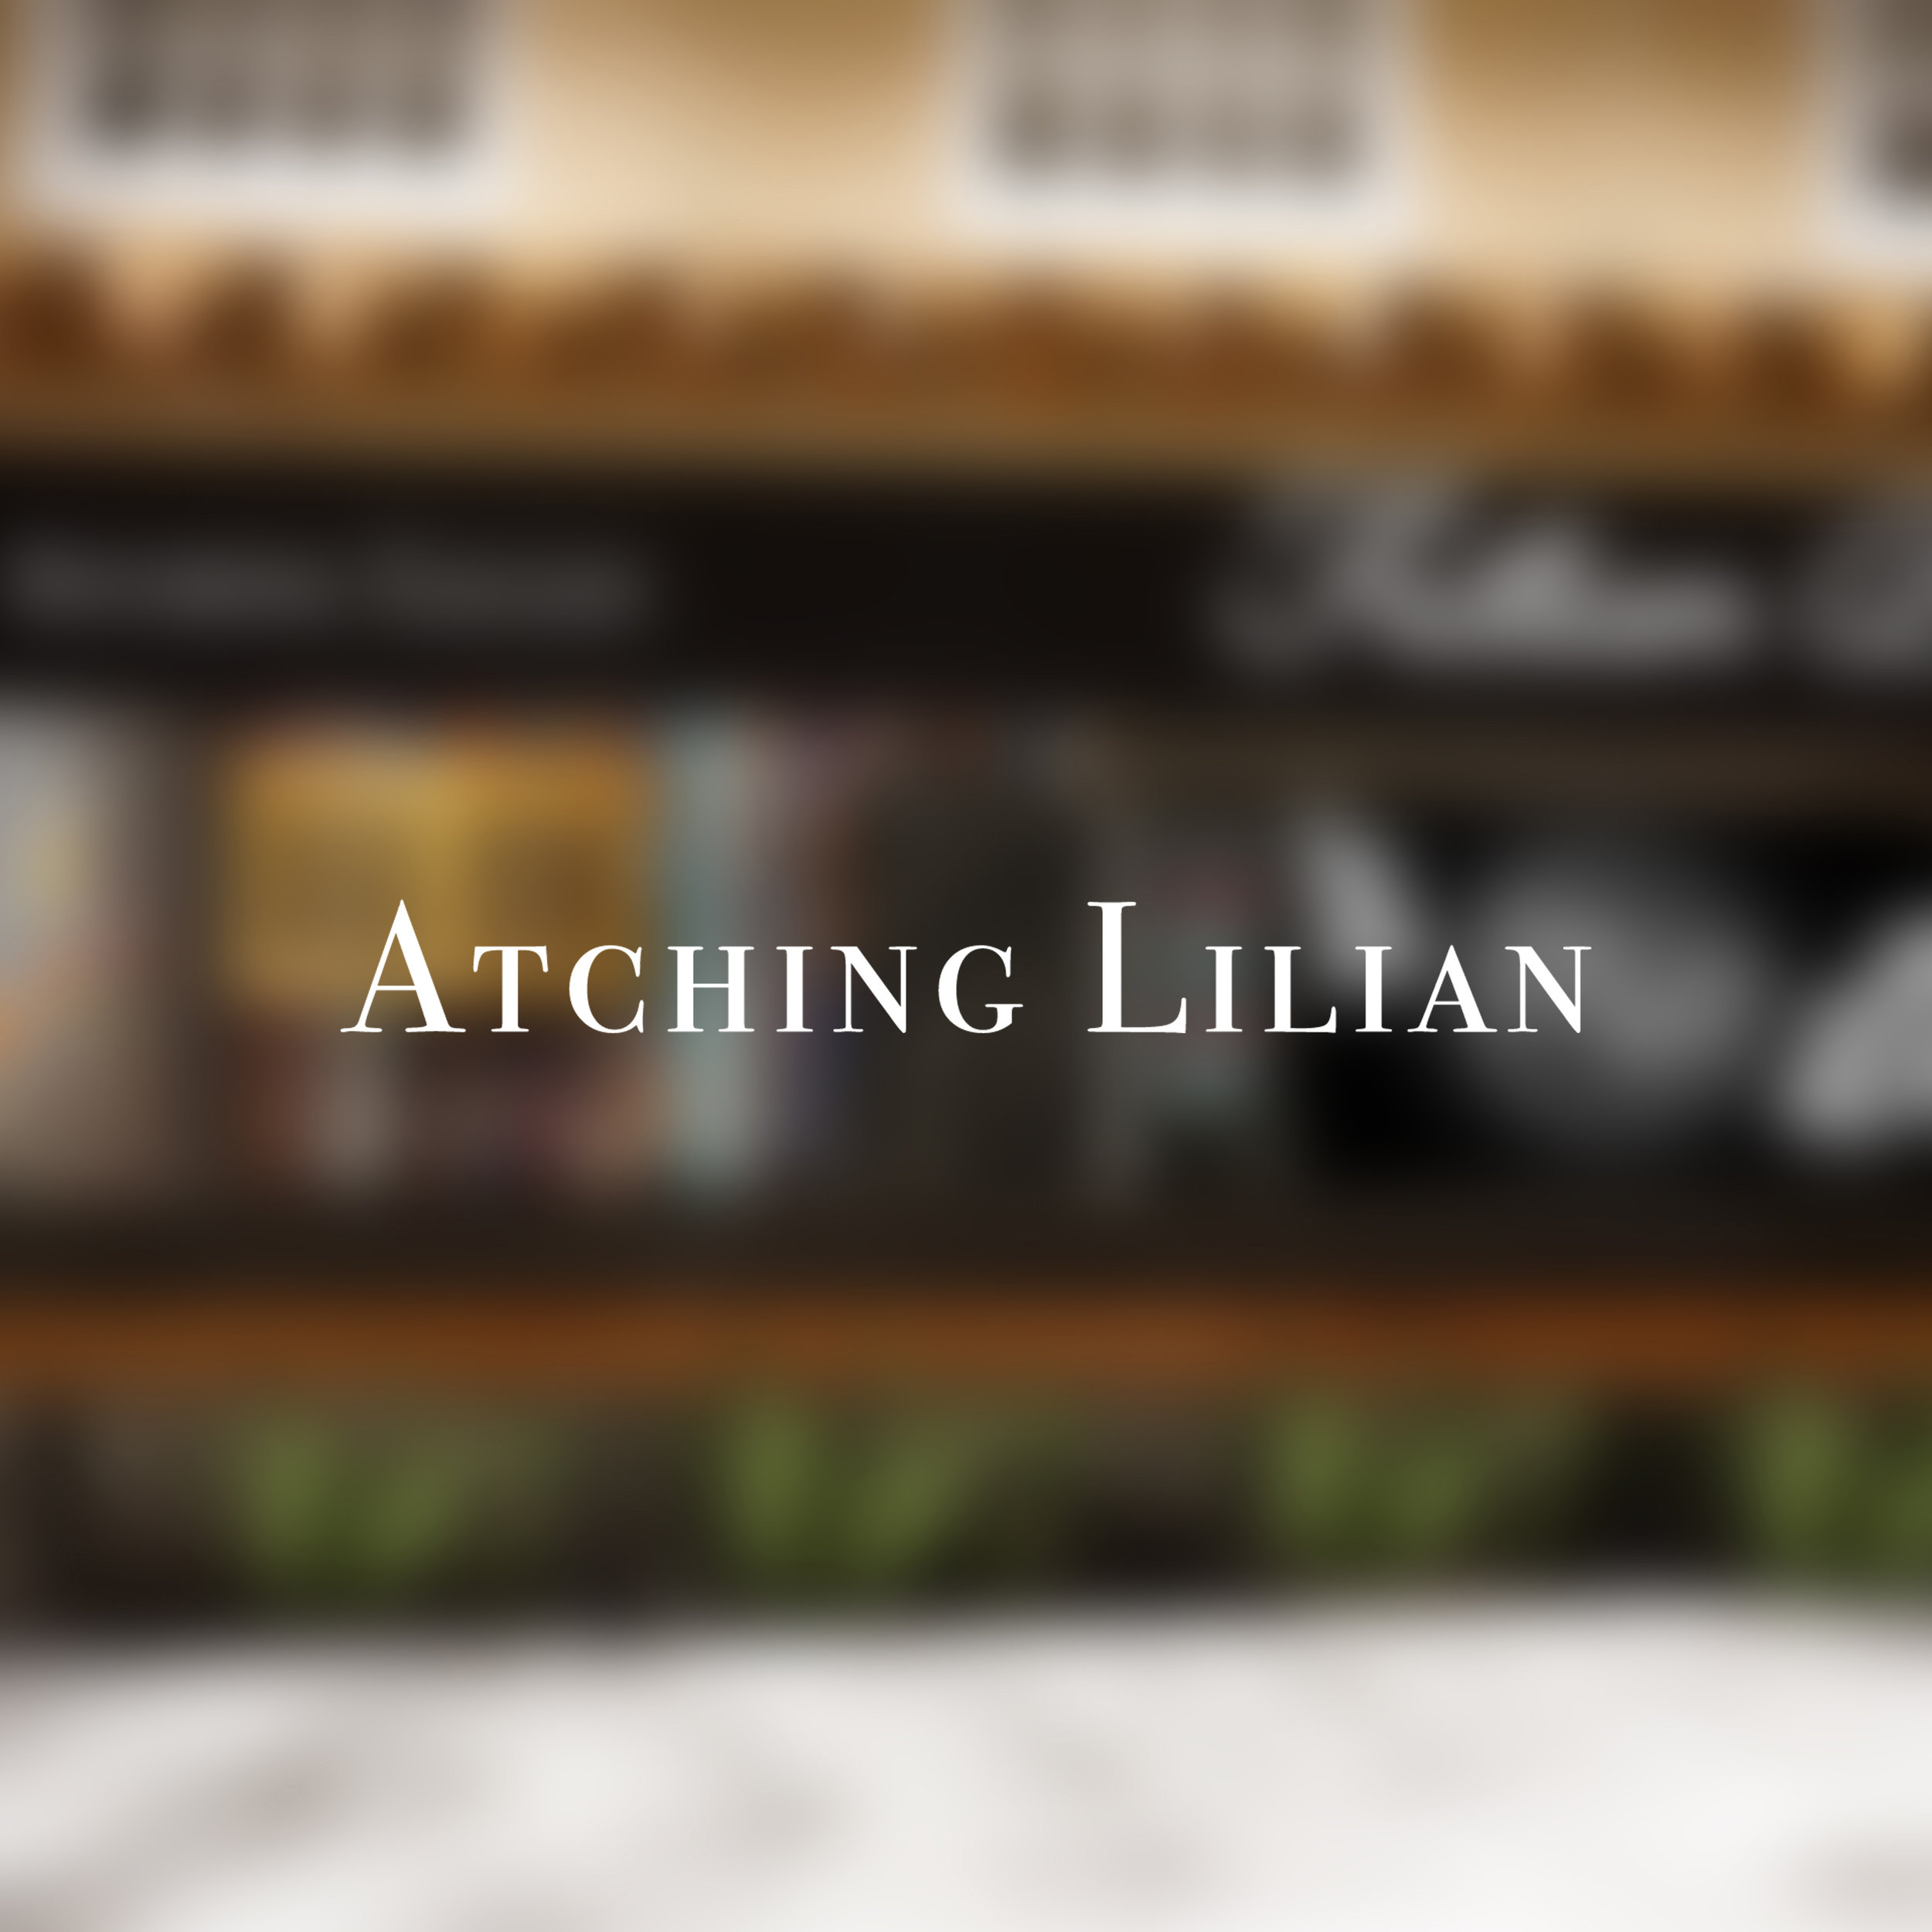 ATCHING LILLIAN.jpg